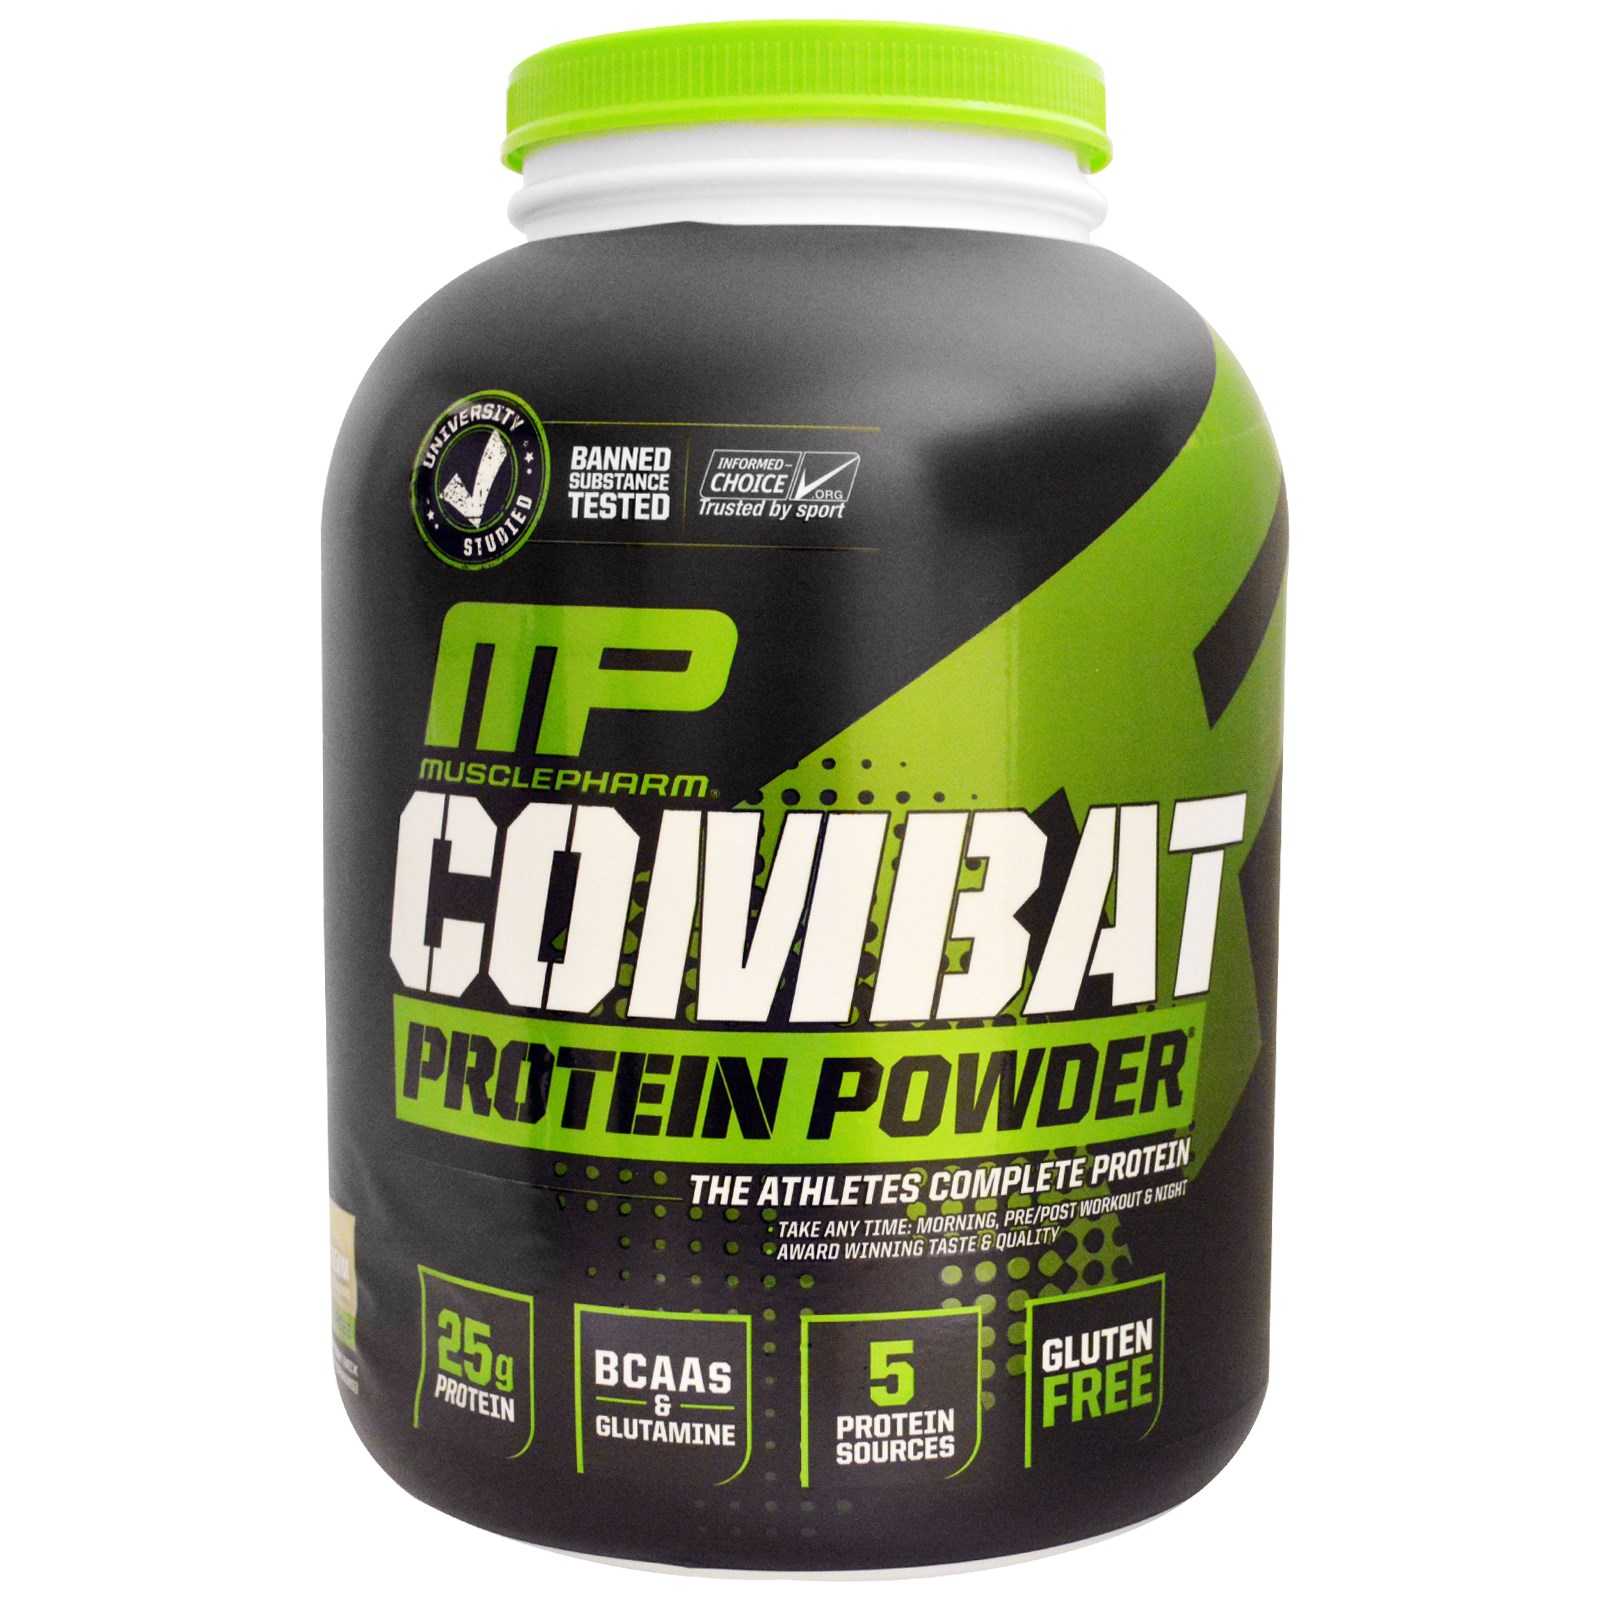 Musclepharm Combat Protein Powder 1.8kg